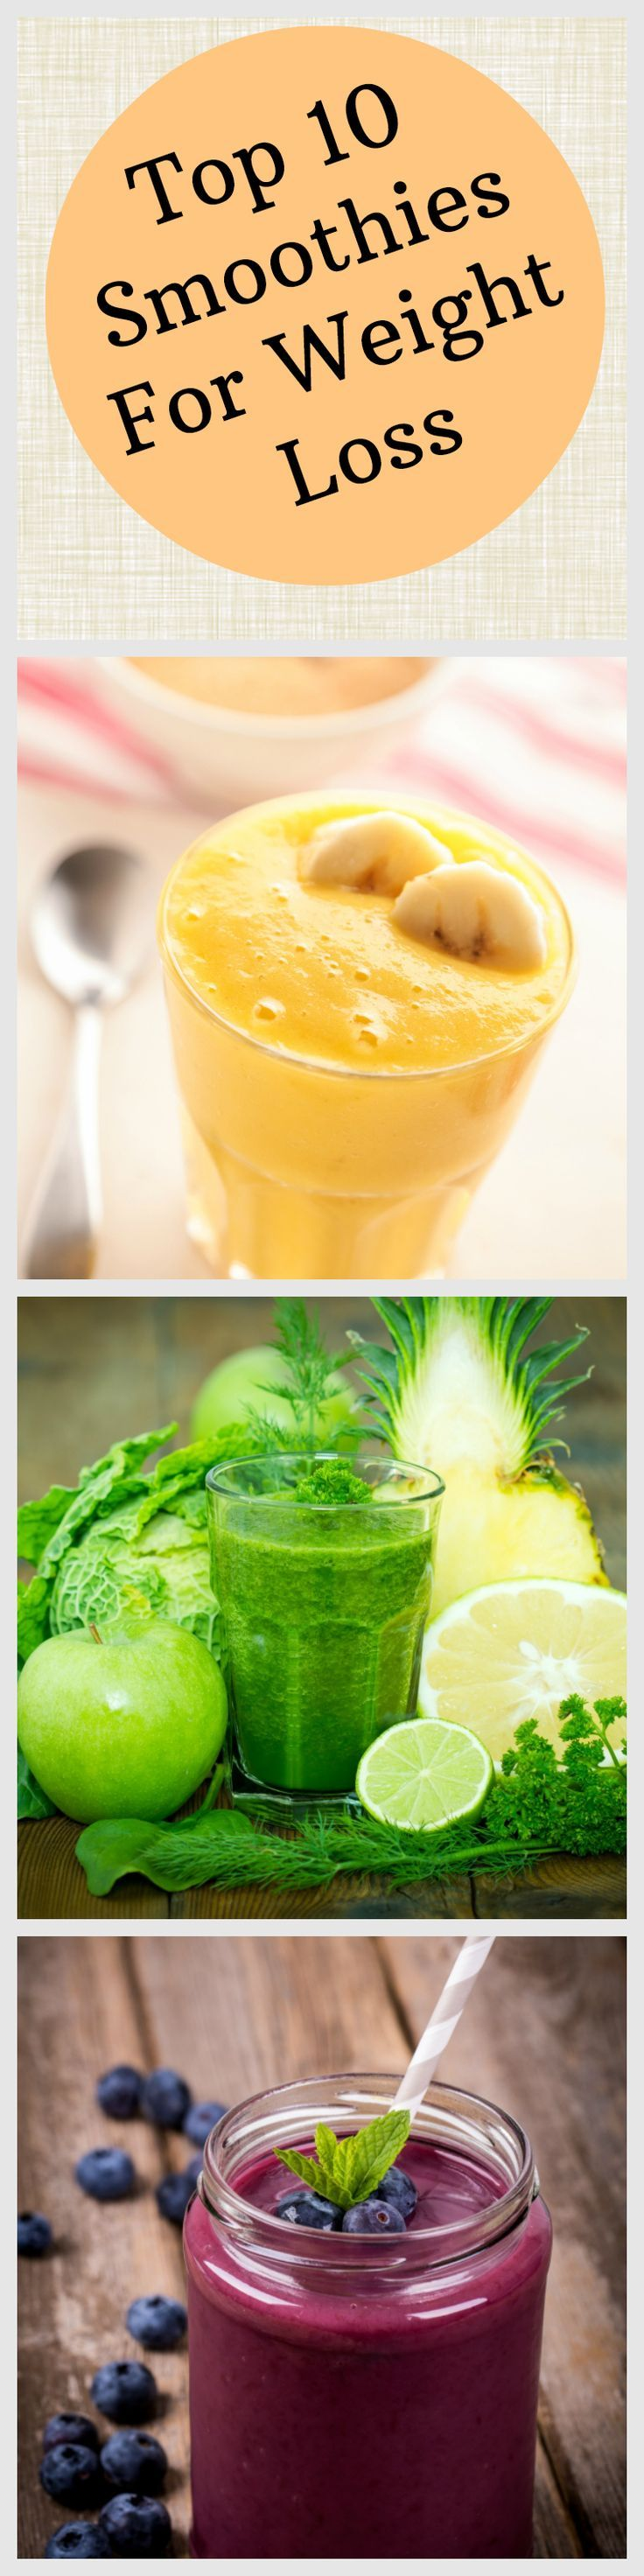 Nutribullet Smoothies Ten Awesome Smoothies for Weight Loss. The most popular weight loss recipes on AllNutribulletRecipes.com.